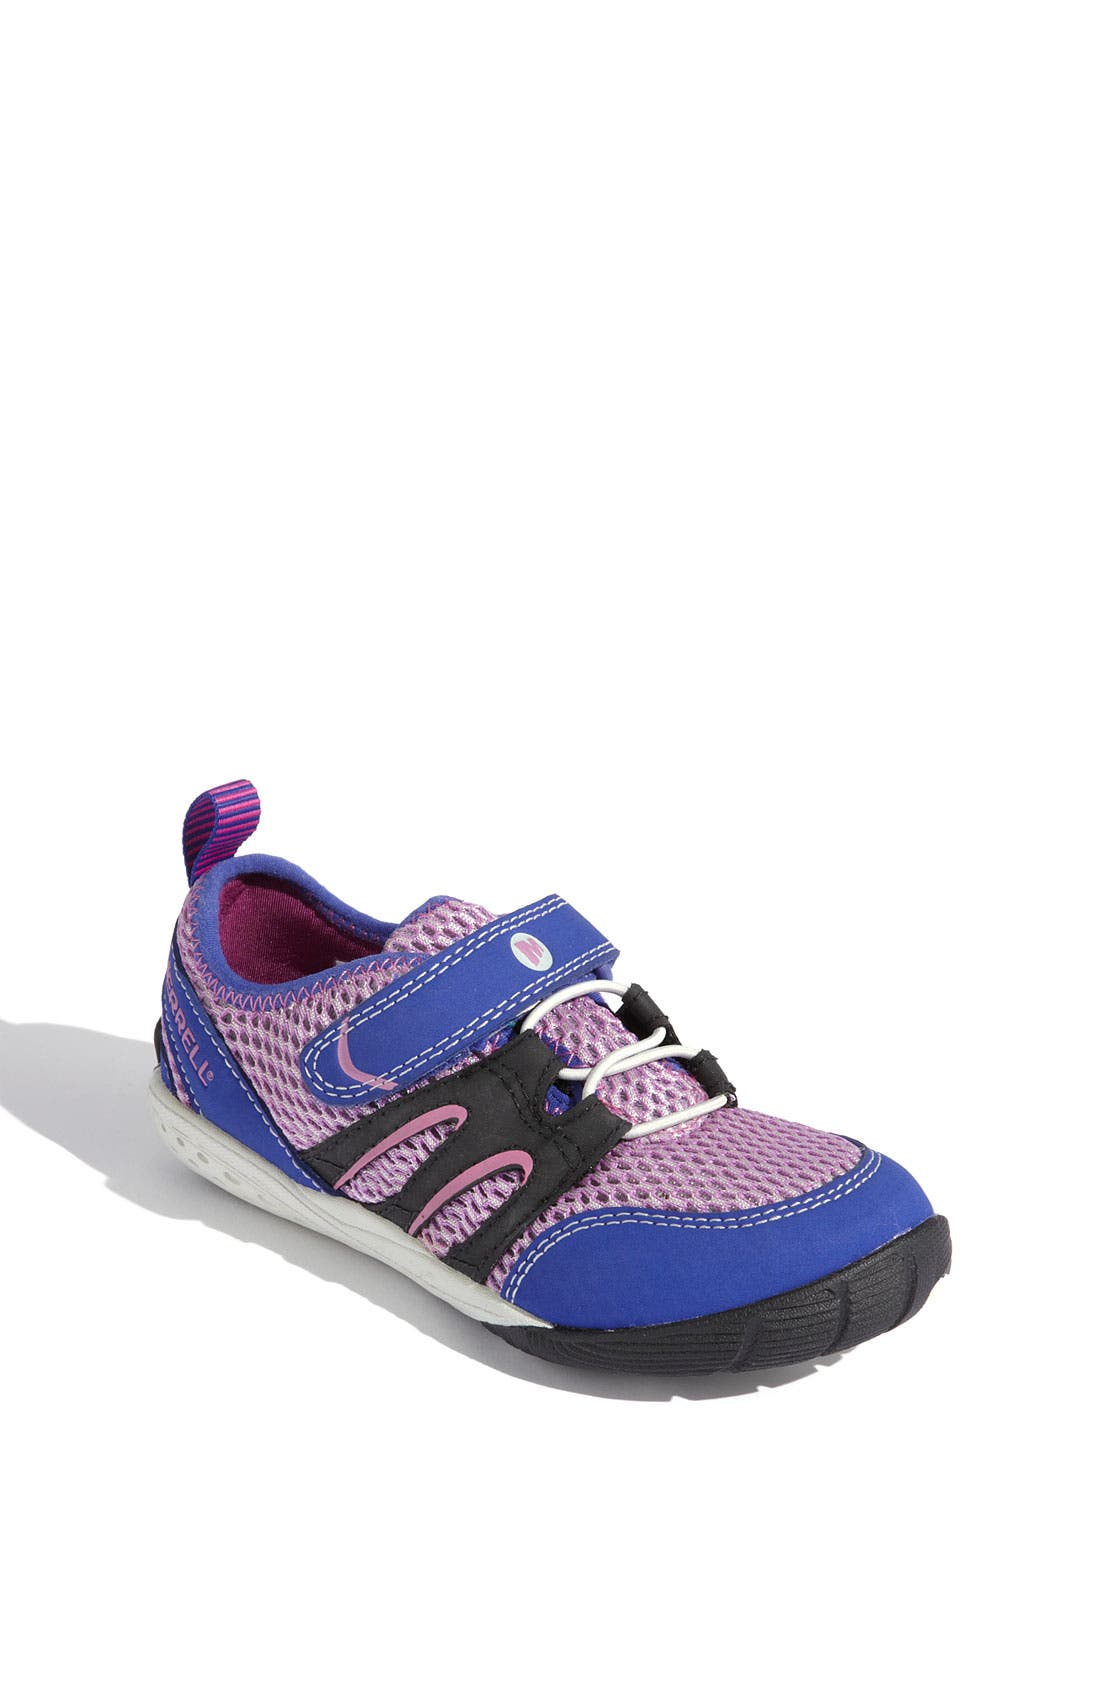 Alternate Image 1 Selected - Merrell 'Trail Glove' Slip-On (Toddler, Little Kid & Big Kid)